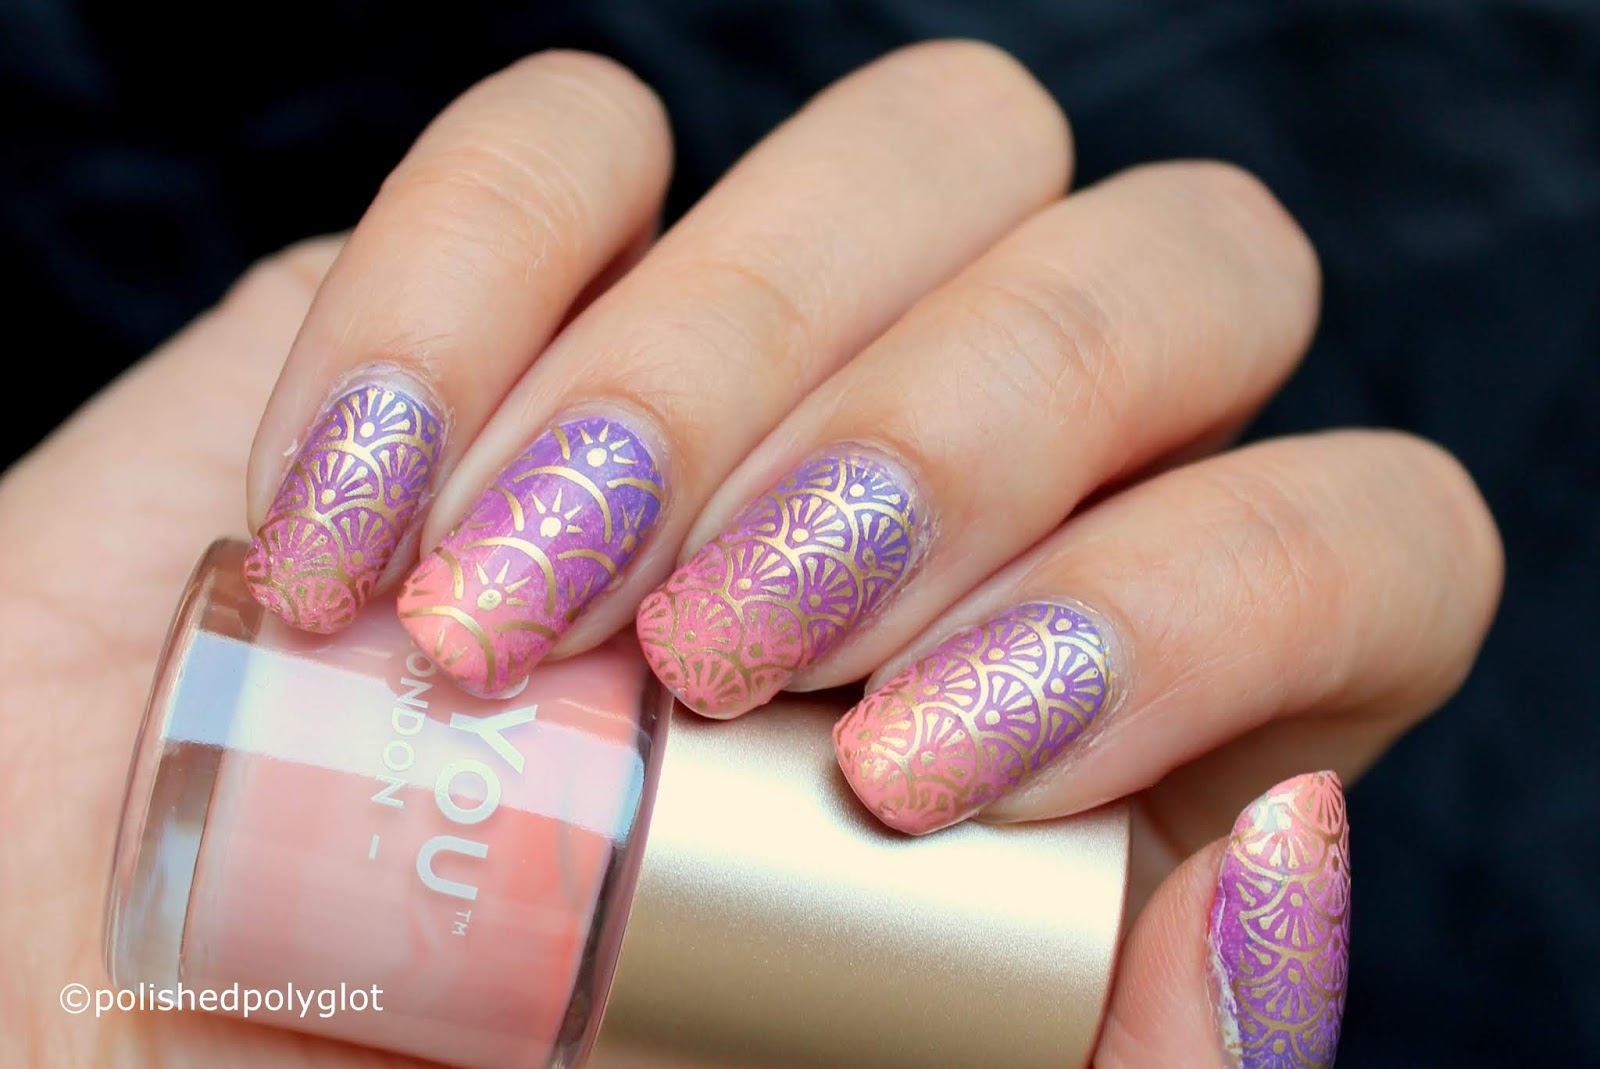 Nail Art │ Peach and Lilac Stamped gradient Manicure [26 Great Nail ...